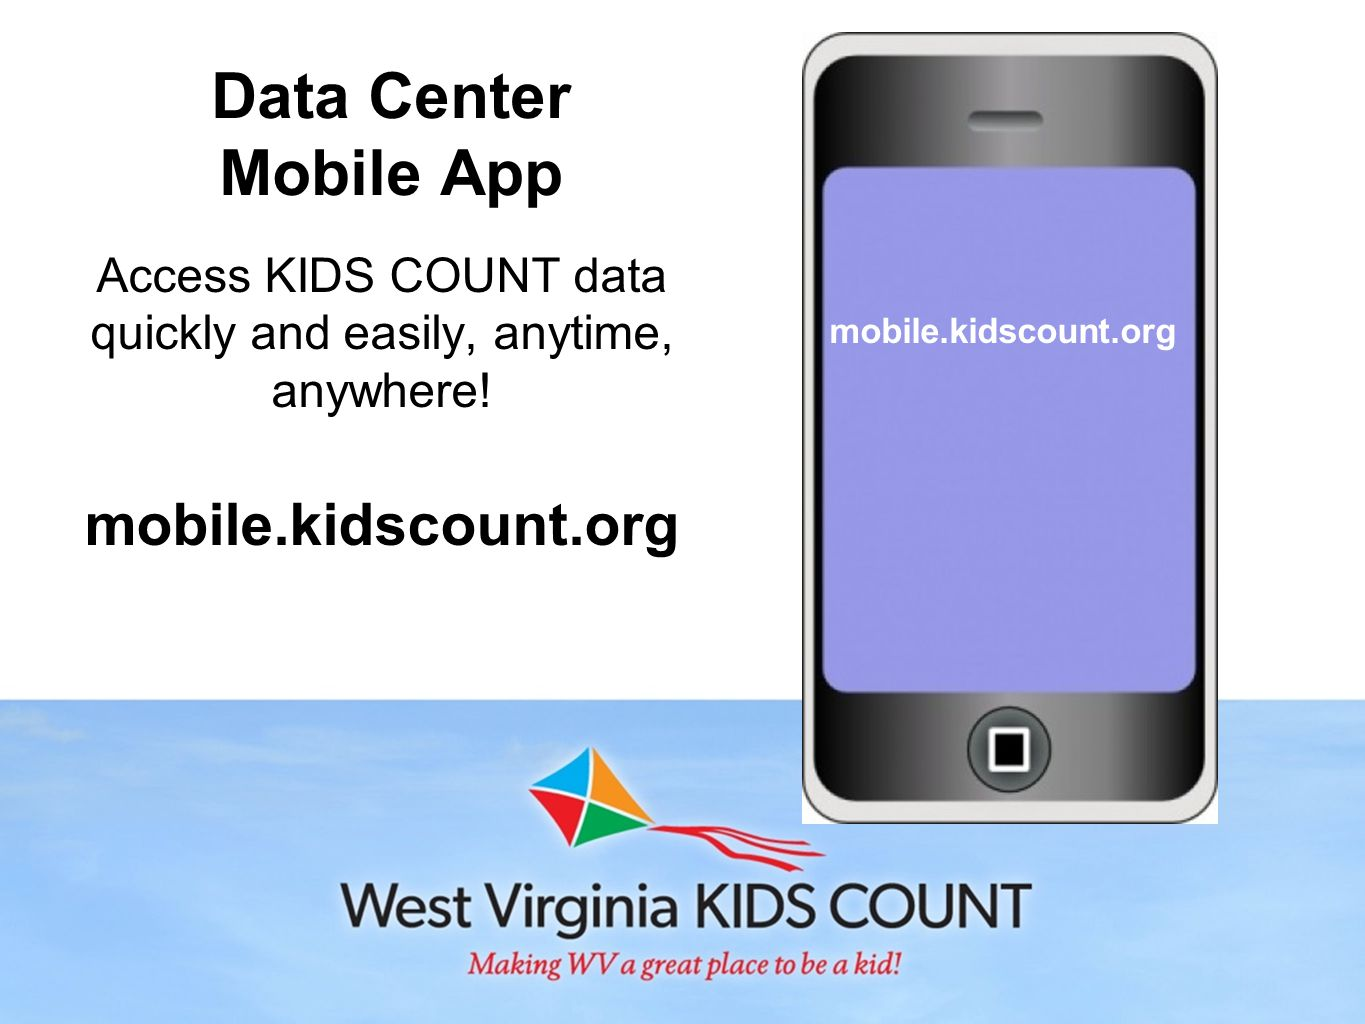 Data Center Mobile App Access KIDS COUNT data quickly and easily, anytime, anywhere! mobile.kidscount.org